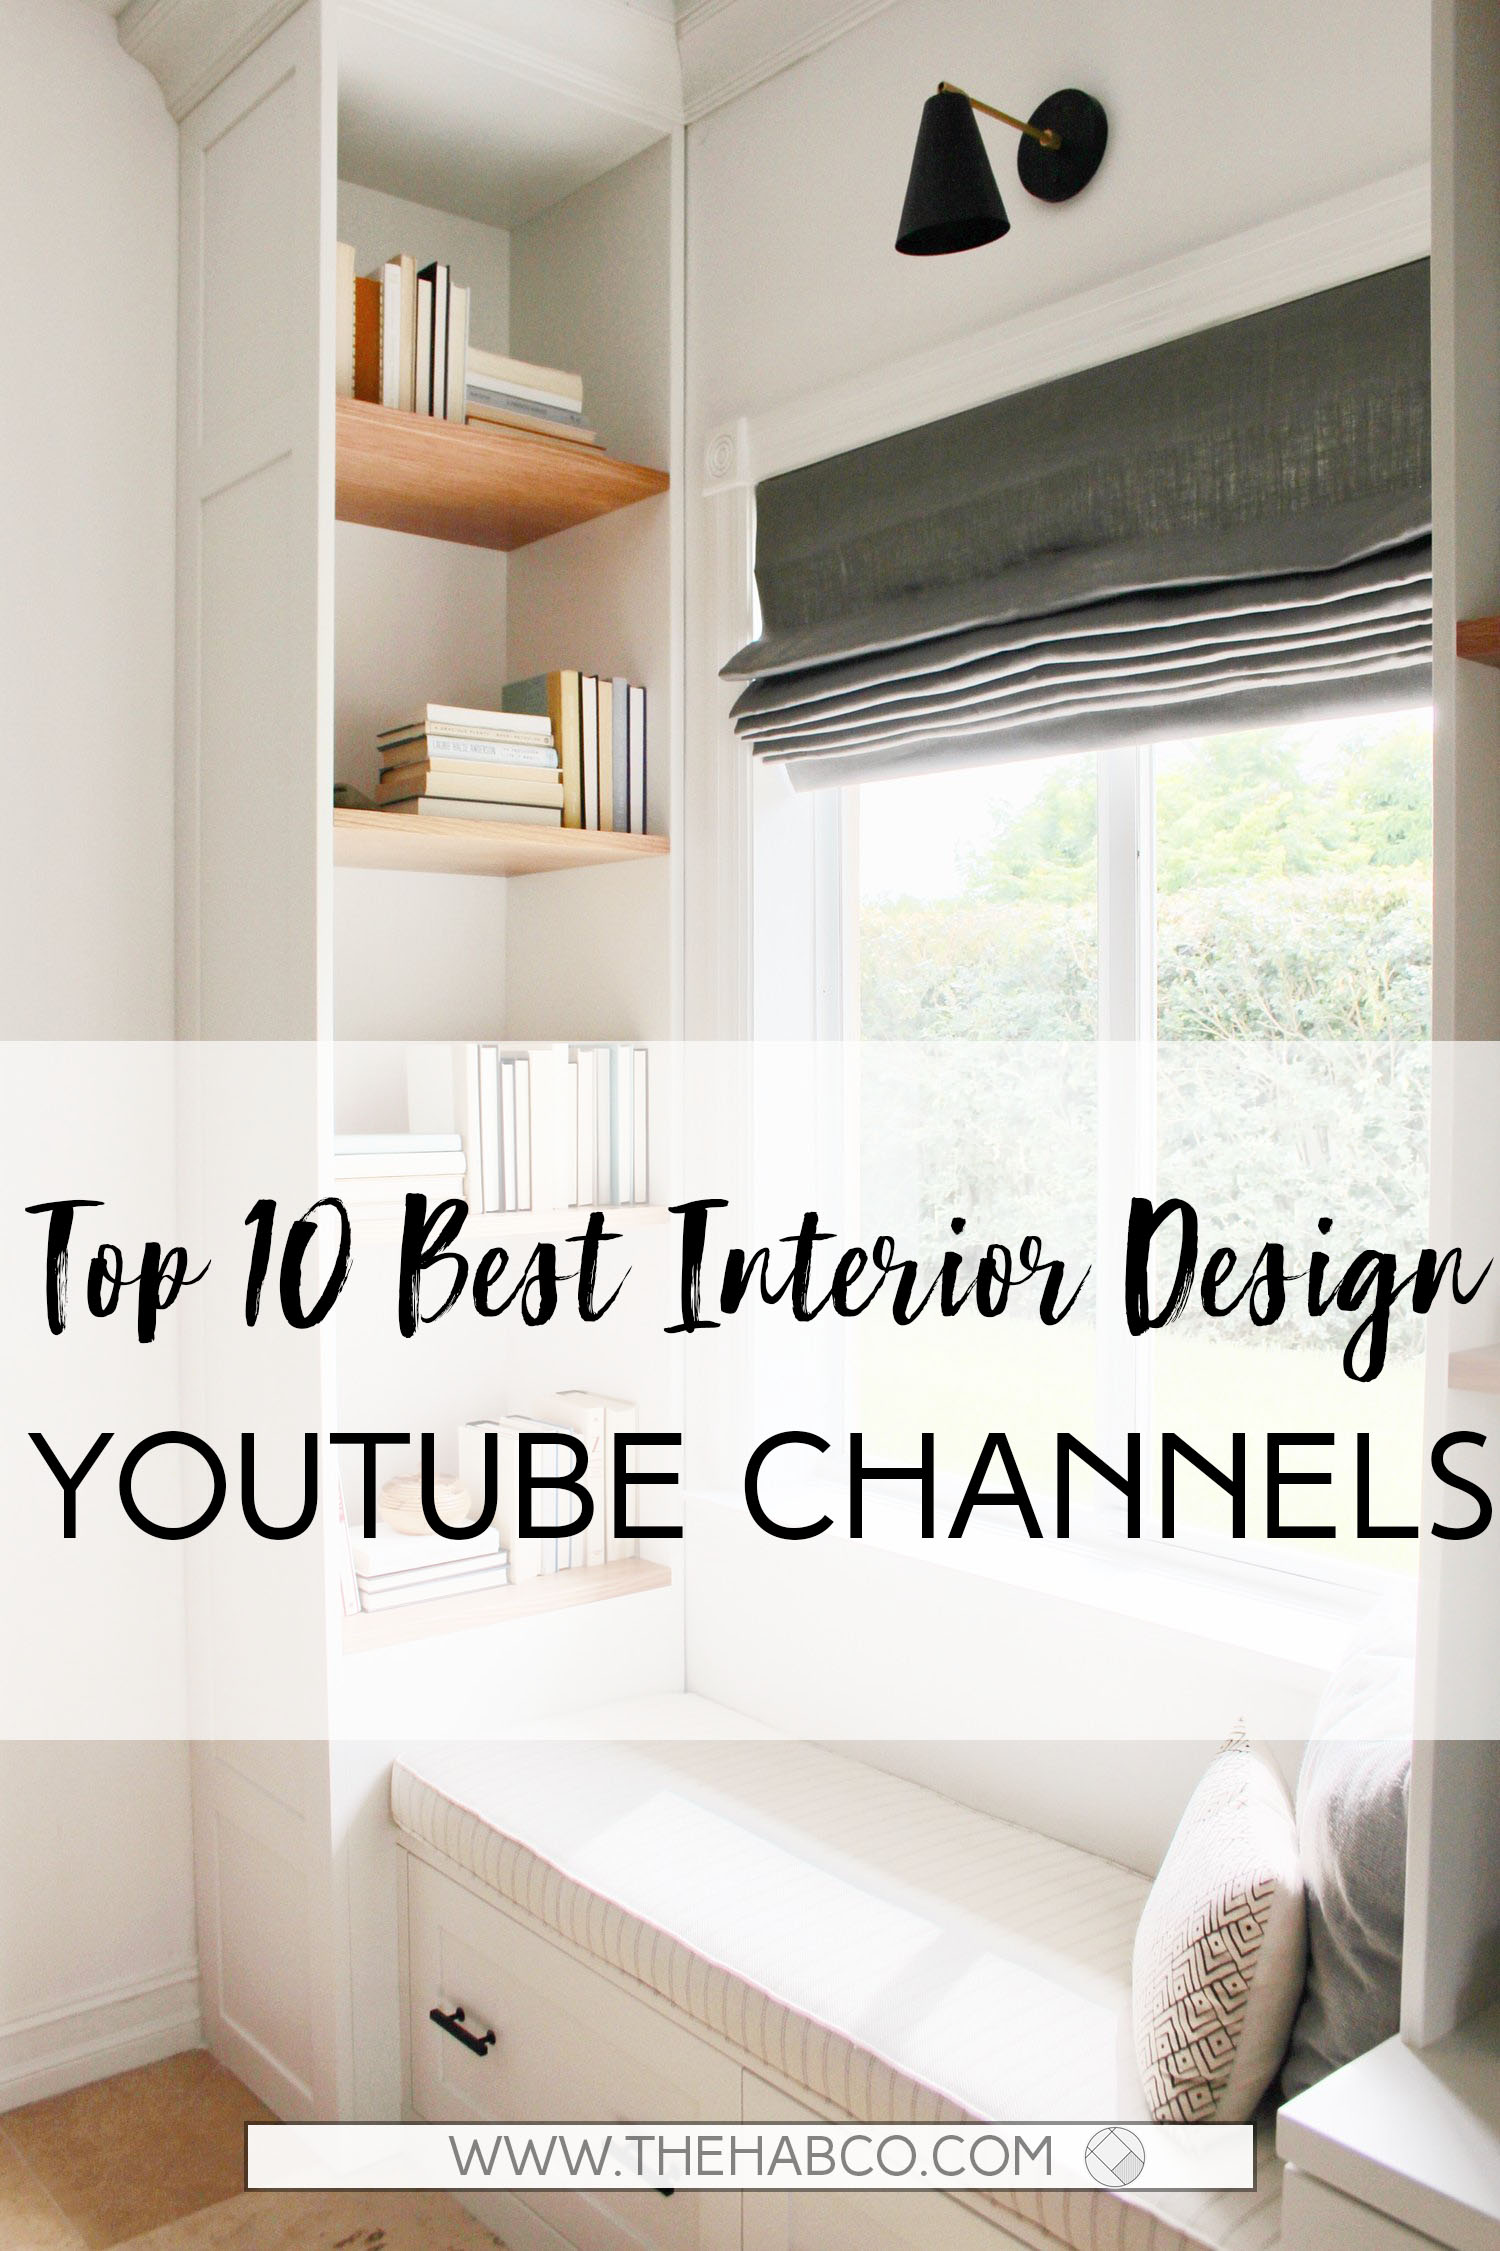 Top 10 Best Interior Design YouTube Channels — The Habitat ...